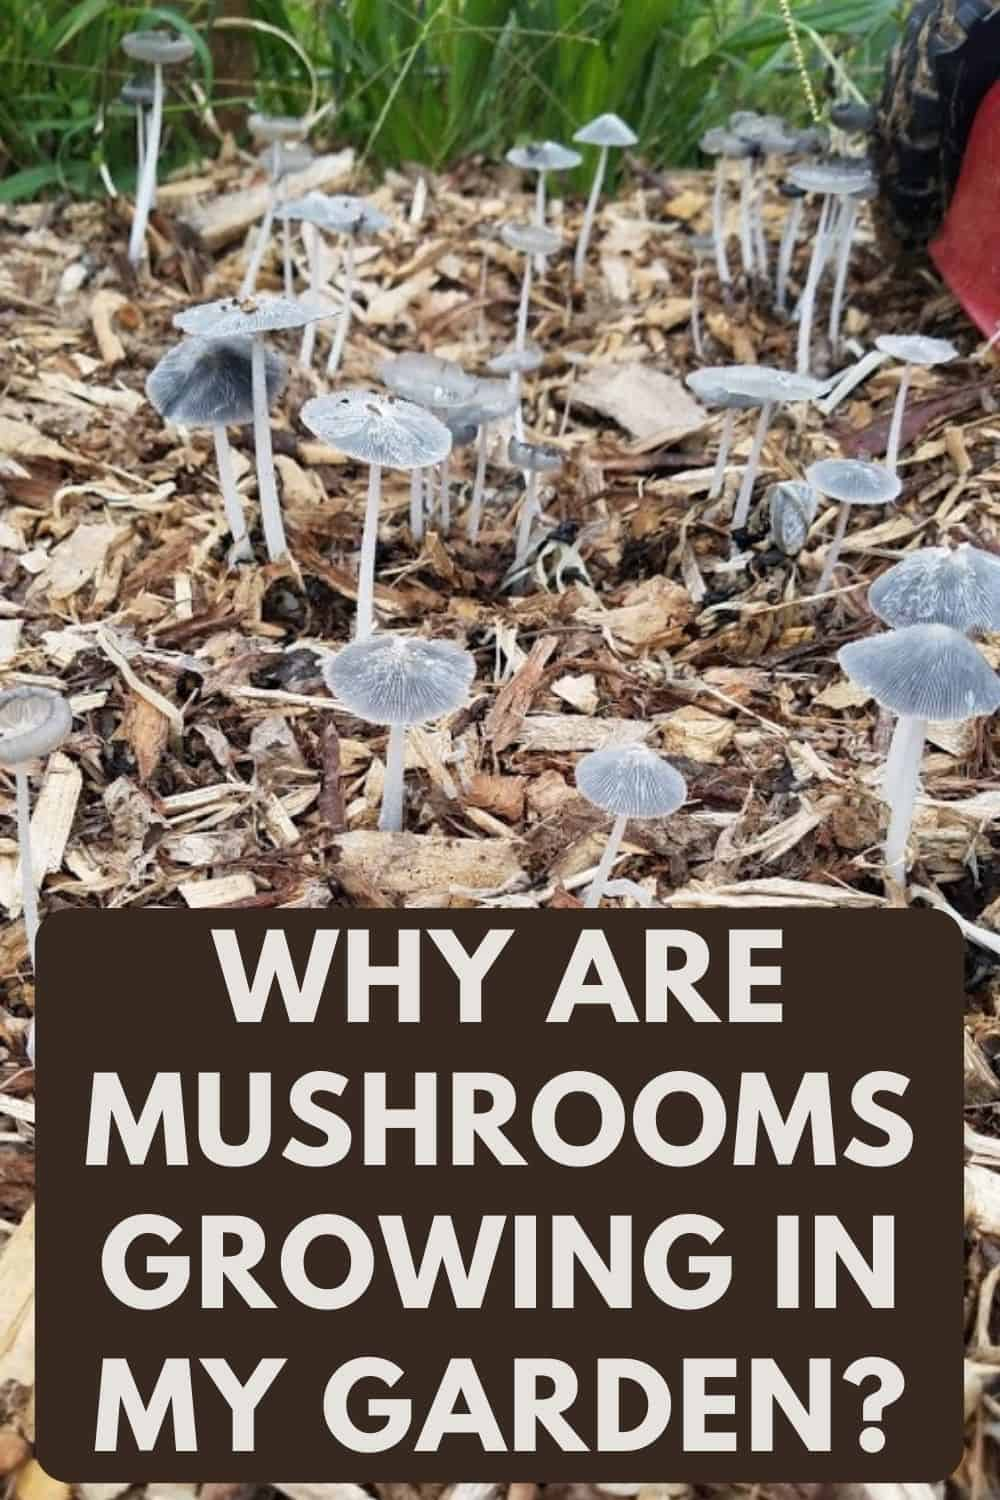 Why Are Mushrooms Growing in My Garden?